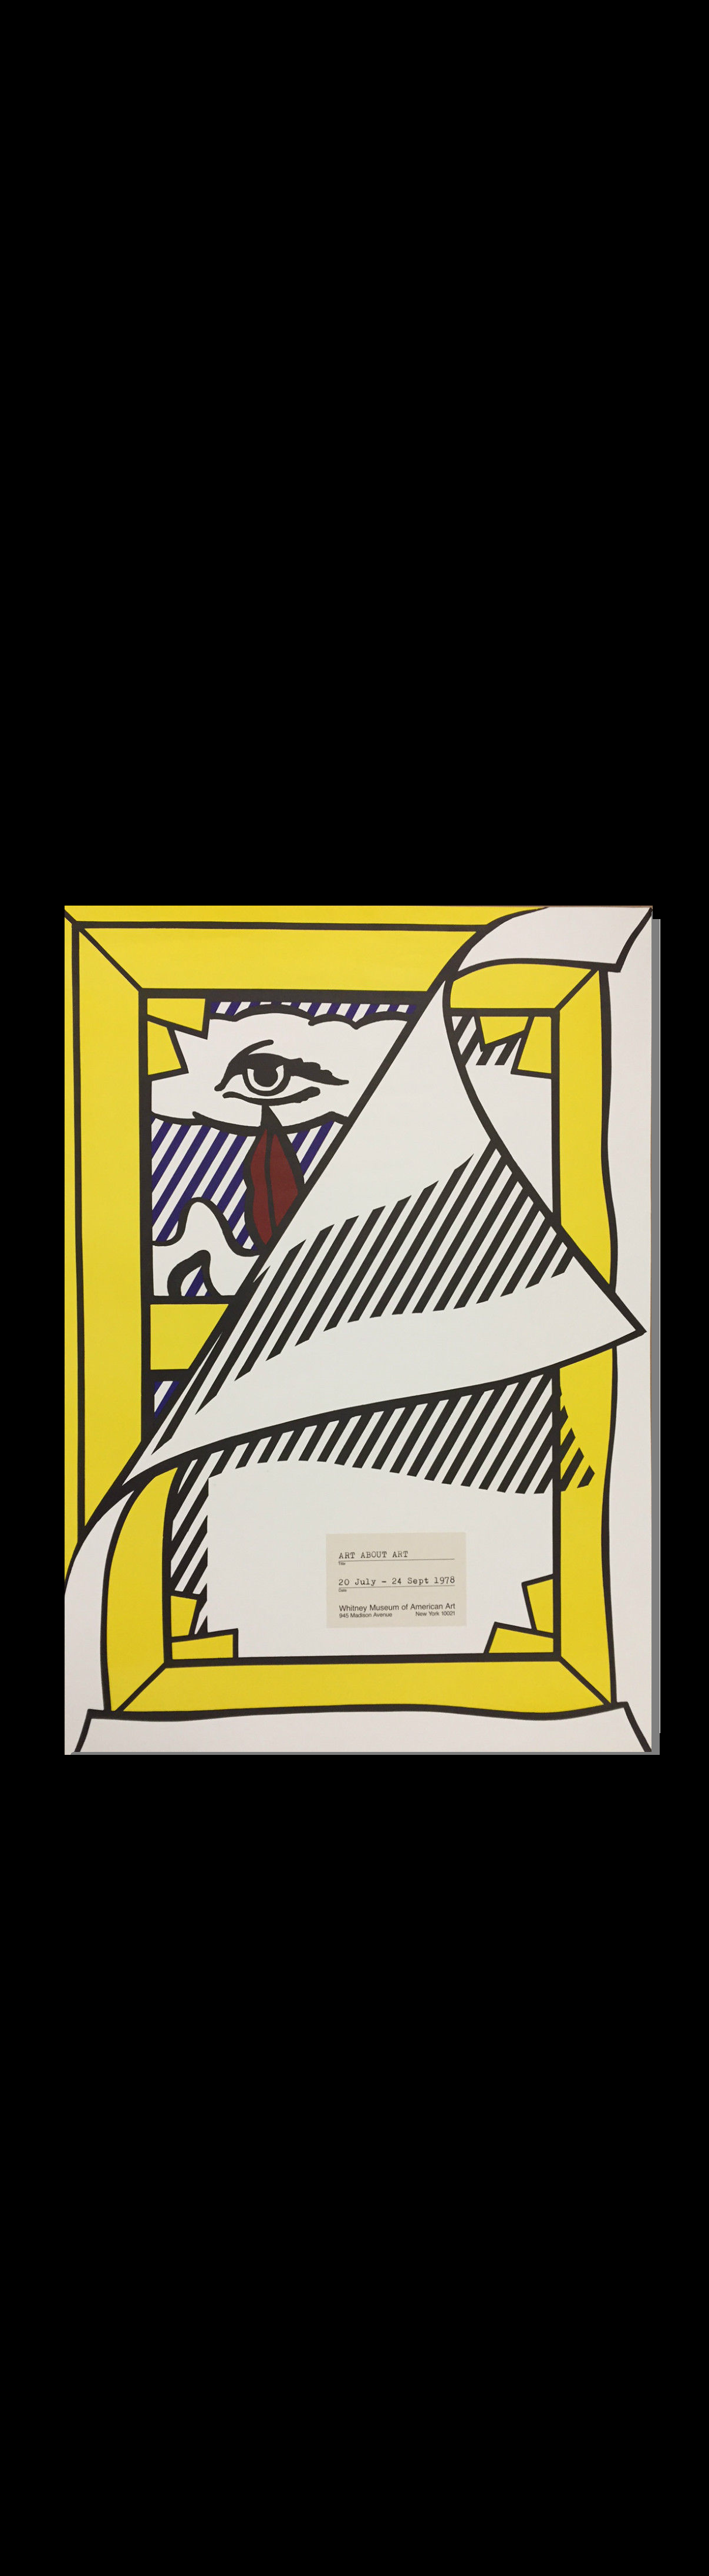 """""""Art About Art"""",  1978, Whitney Museum Exhibition Poster."""